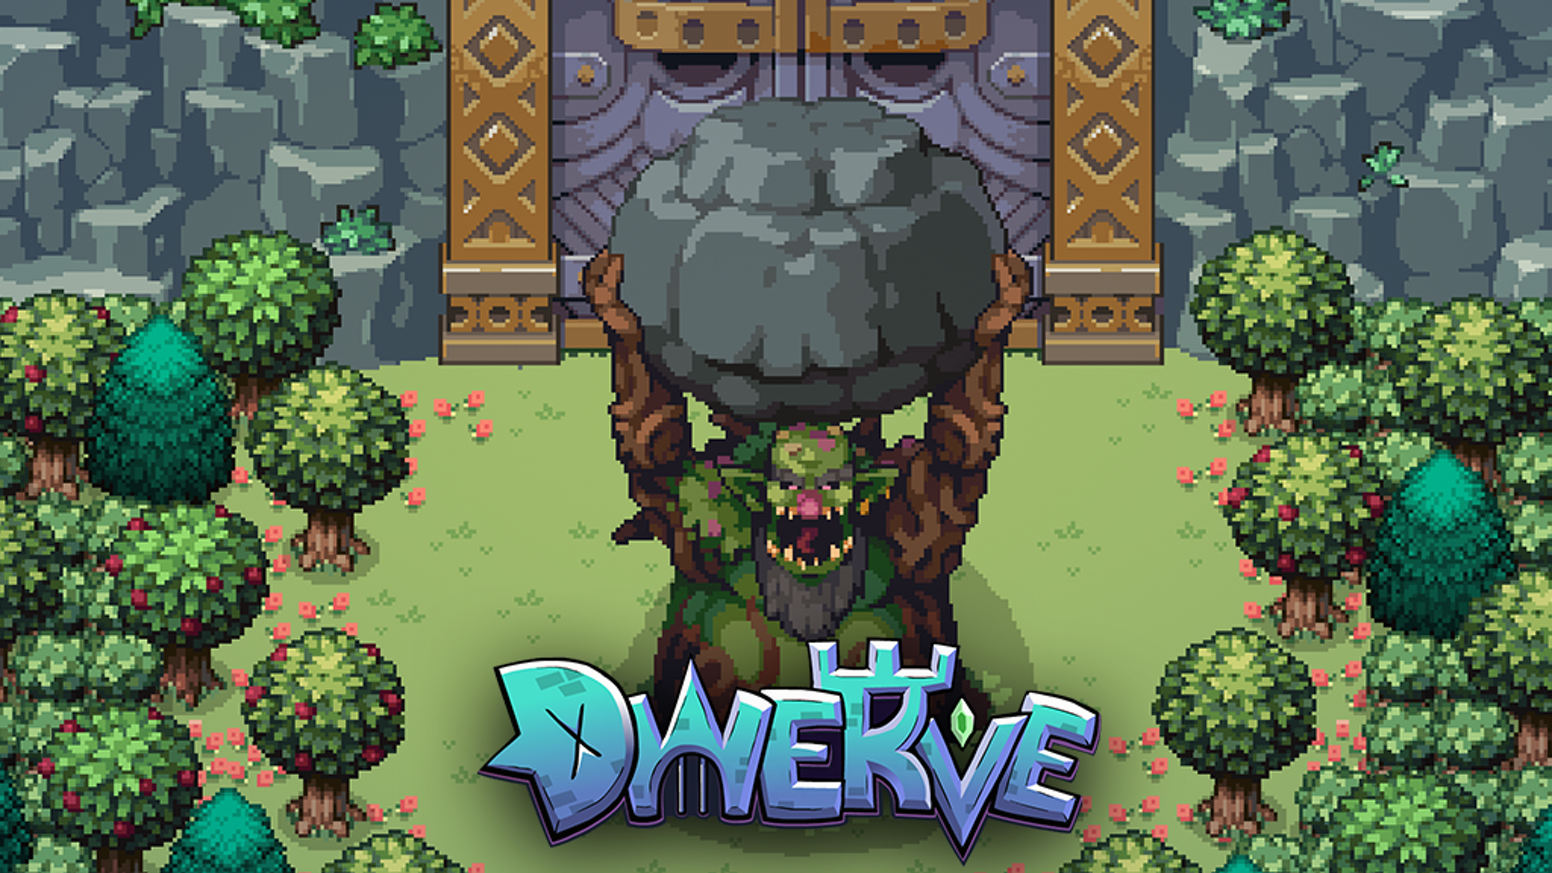 Play as a dwarven tinkerer that uses turrets and traps to fight!